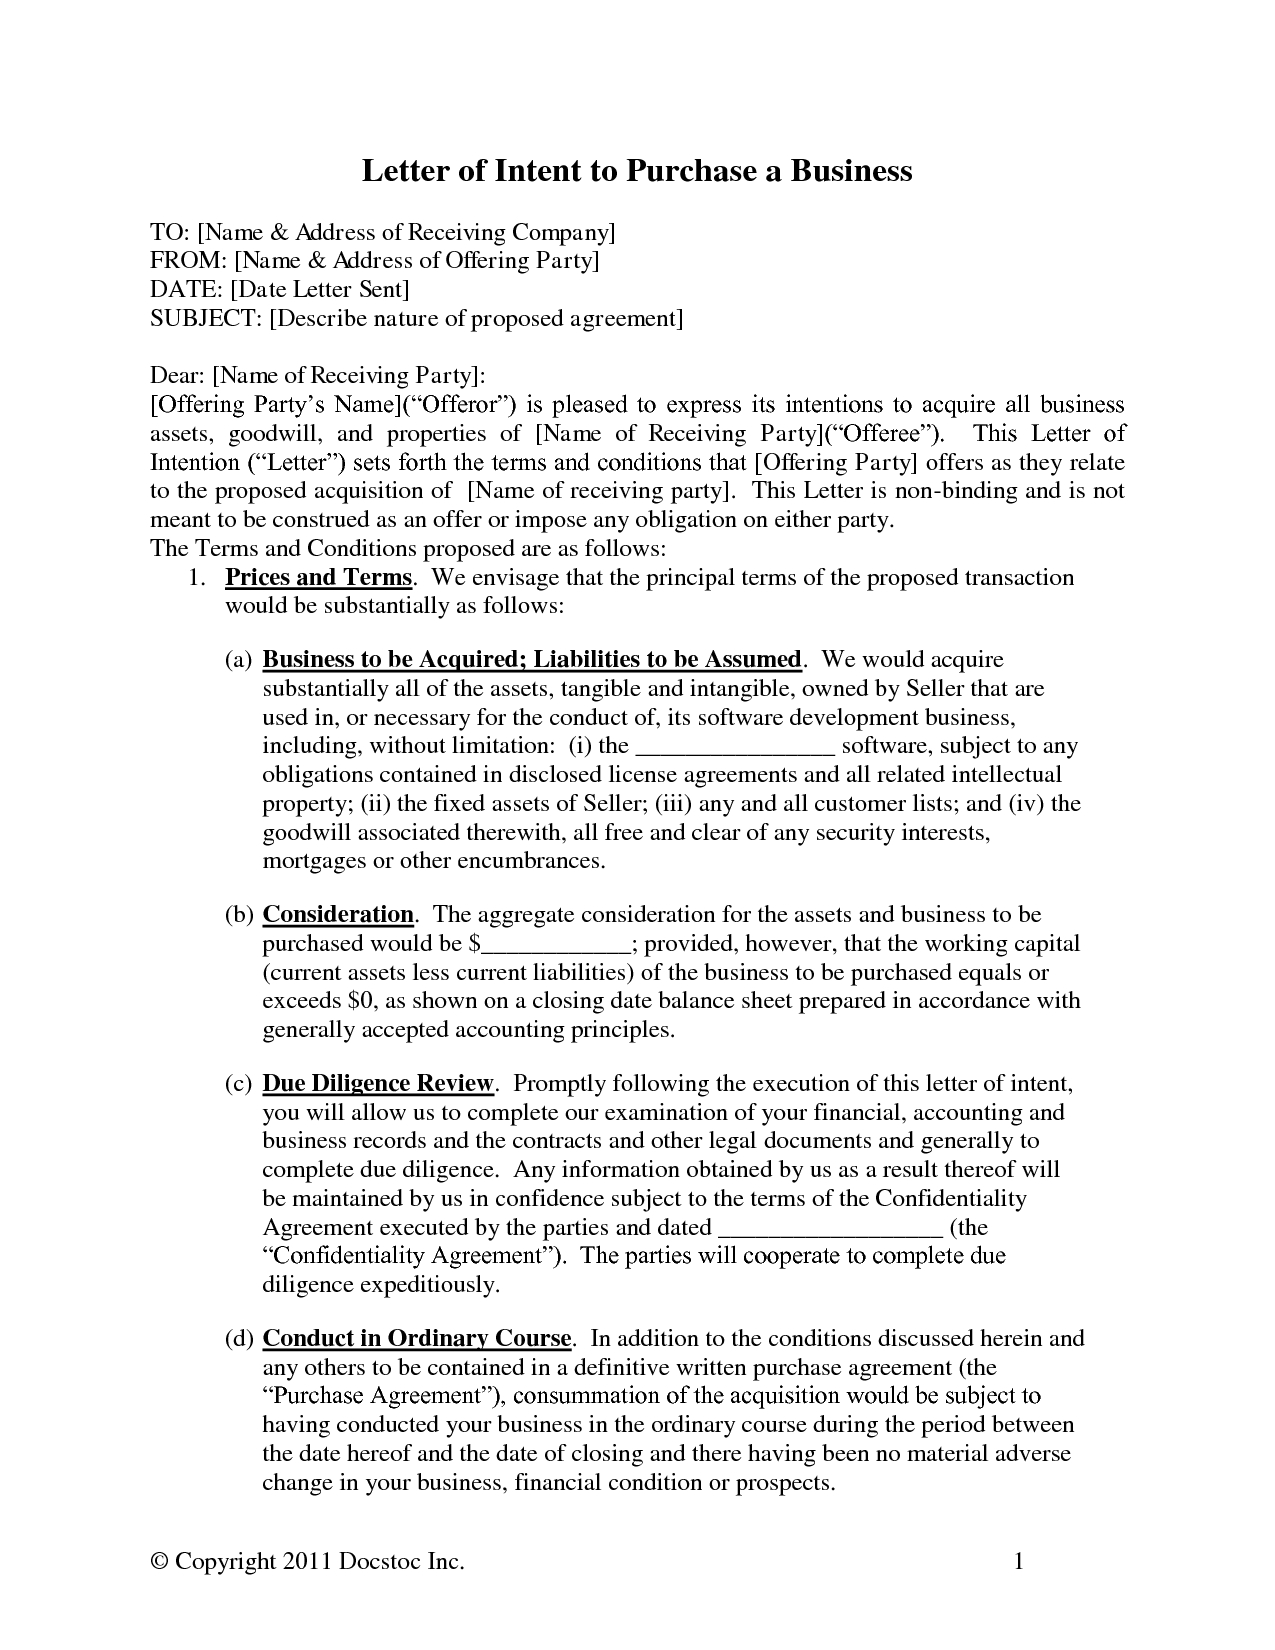 Contract Negotiation Letter Template - Acquisition Business Letters